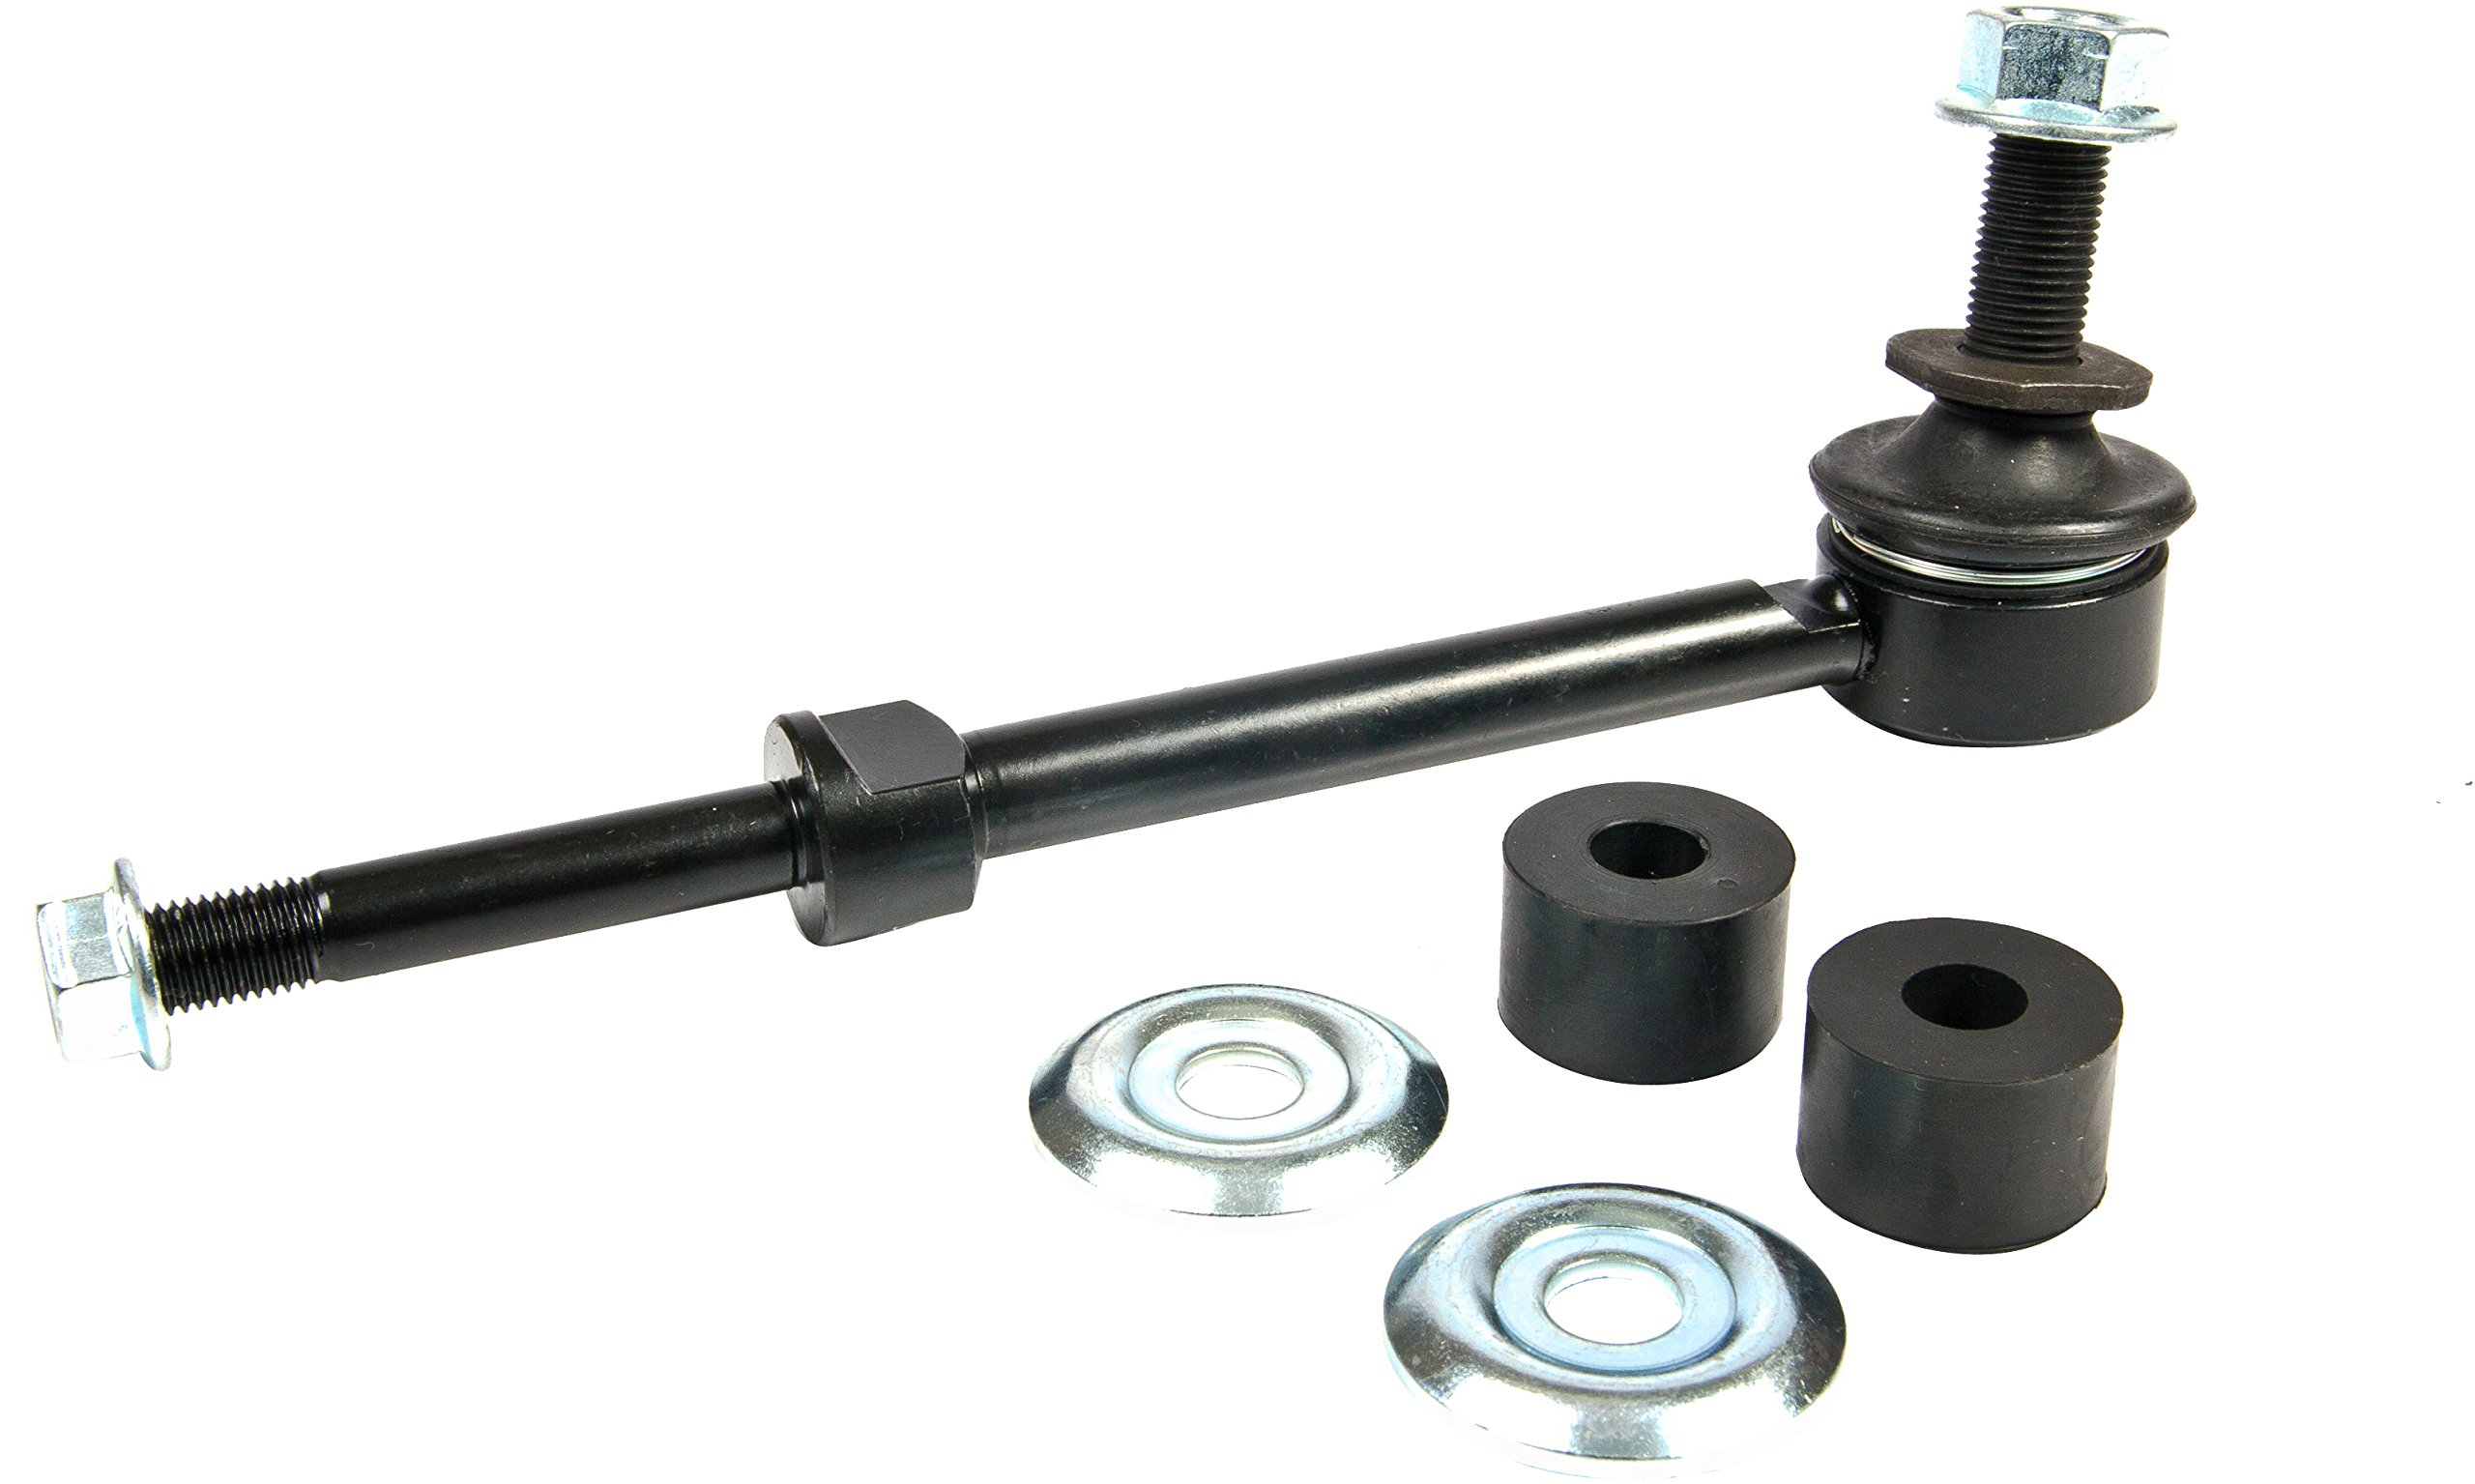 Proforged 113-10125 Front Sway Bar End Link by Proforged (Image #1)